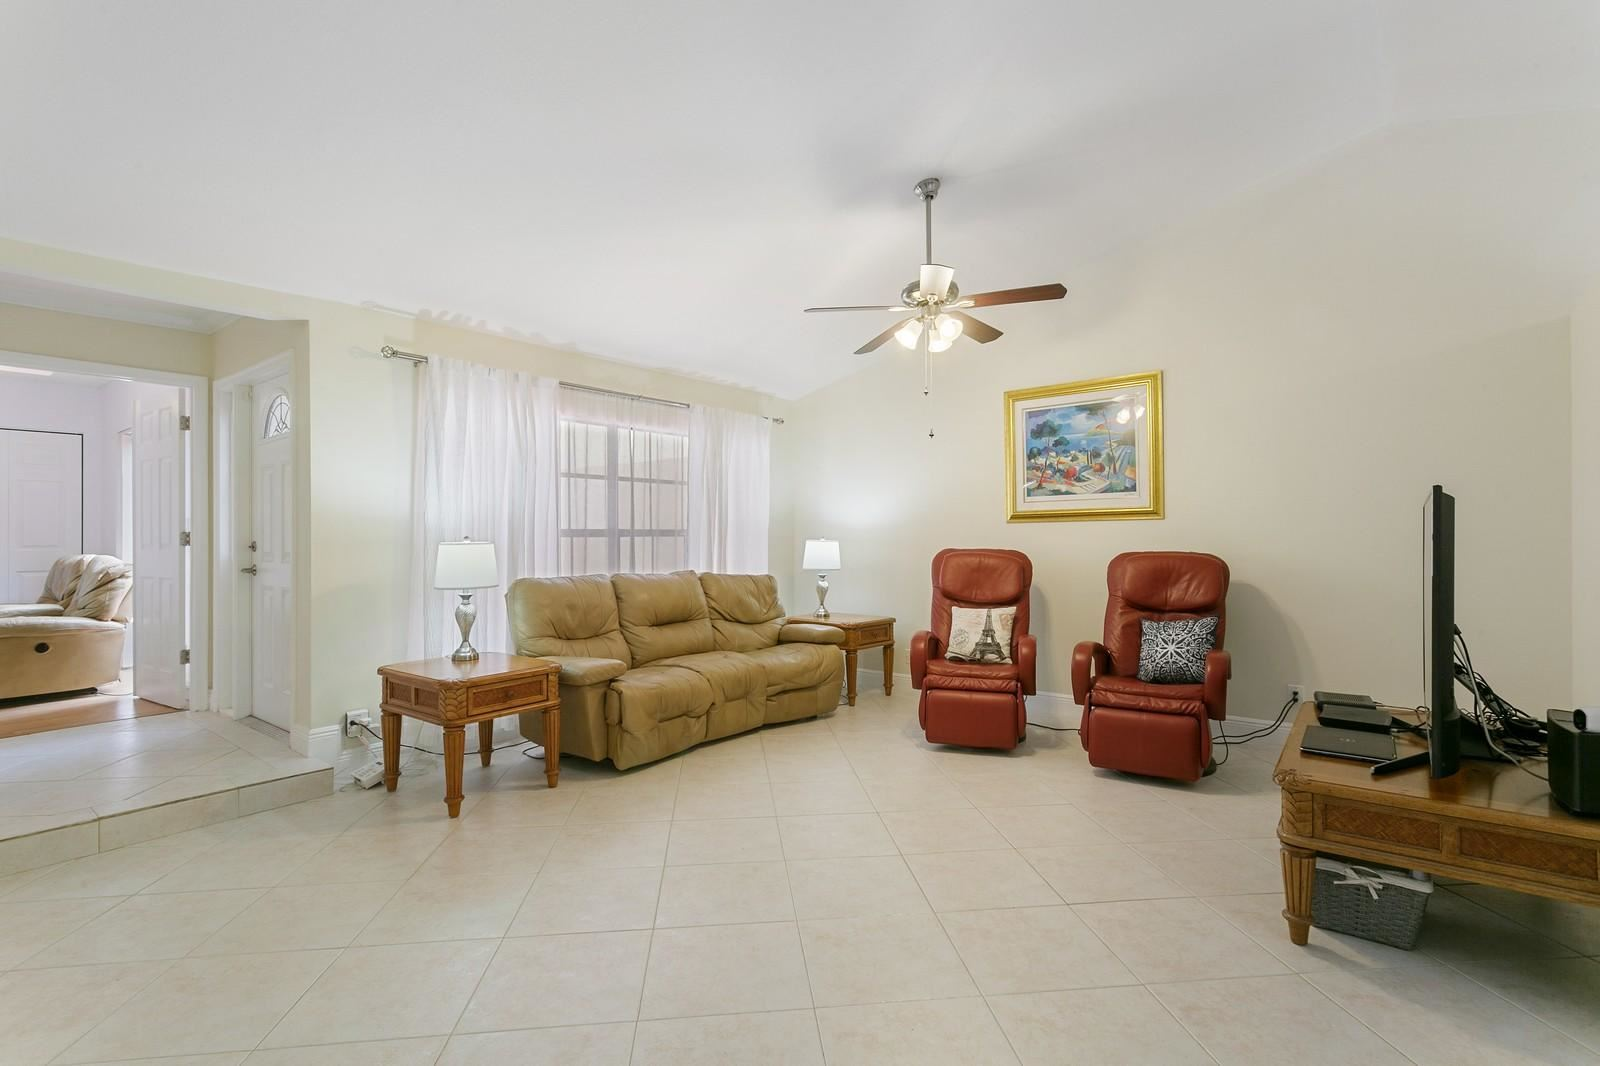 Photo of 5197 Peppercorn Street, Palm Beach Gardens, FL 33418 (MLS # RX-10629014)